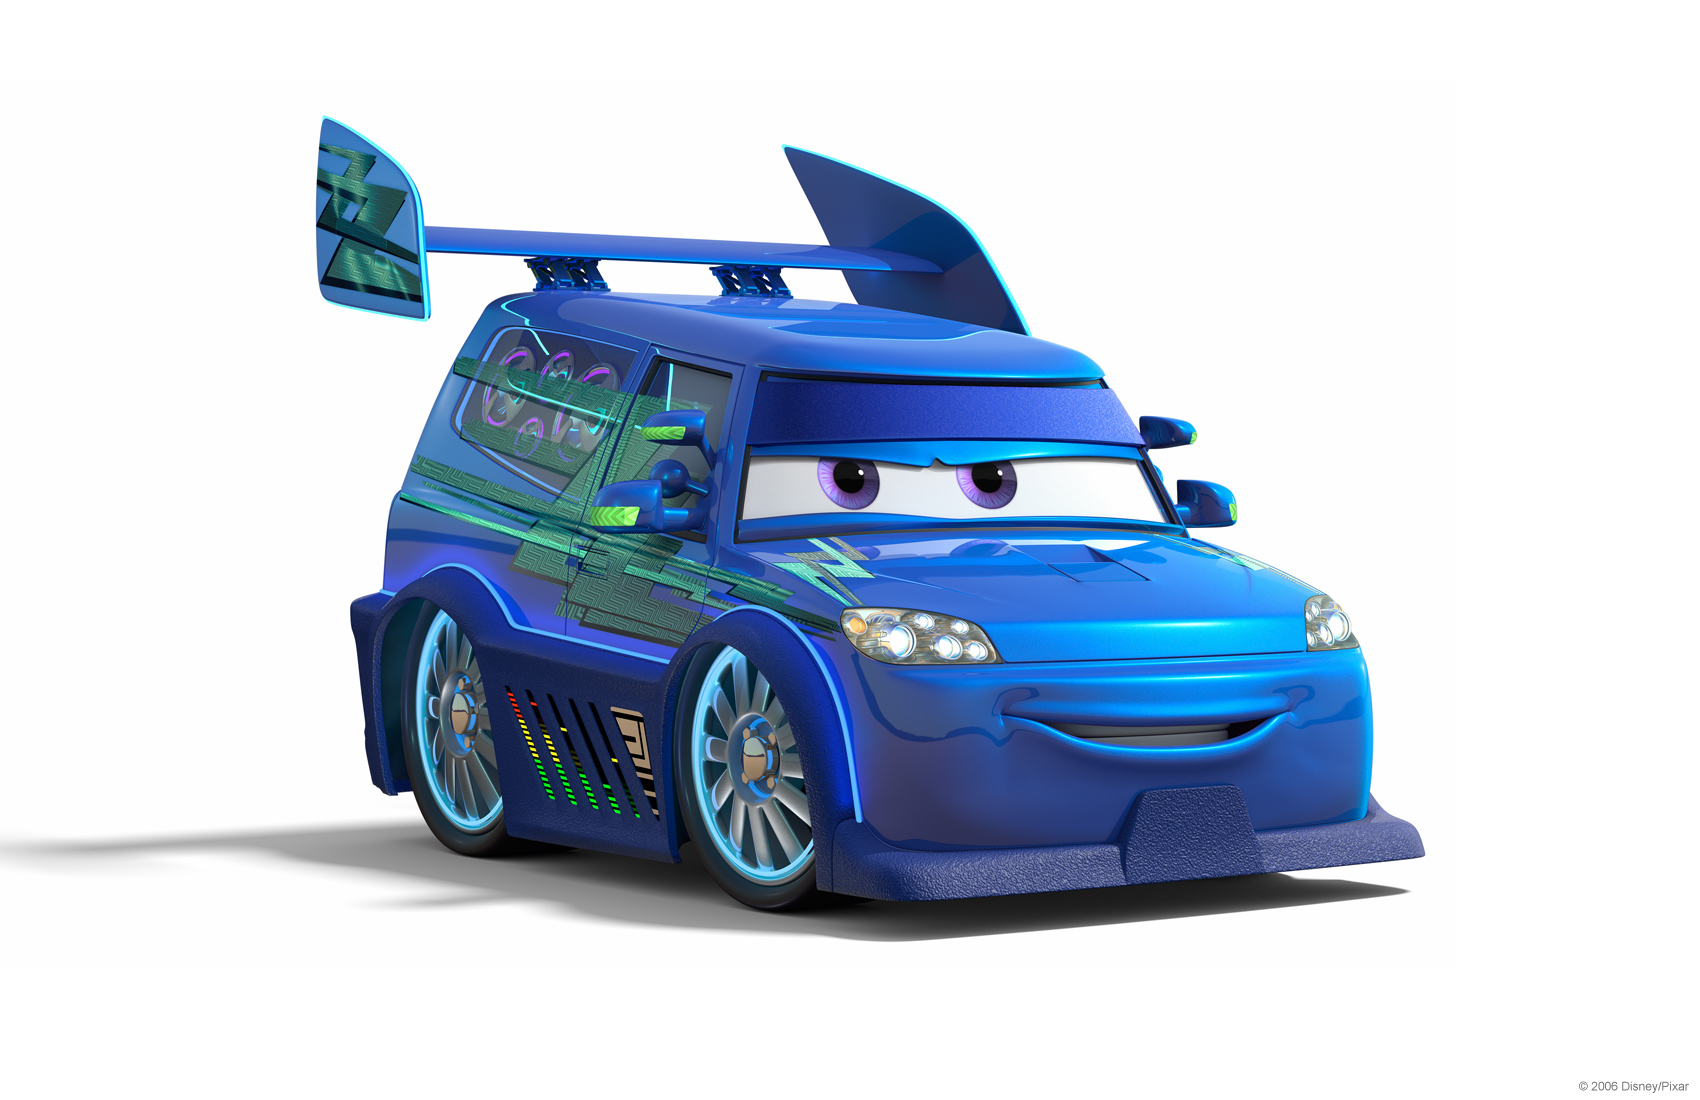 dj pixar cars wiki fandom powered by wikia. Black Bedroom Furniture Sets. Home Design Ideas